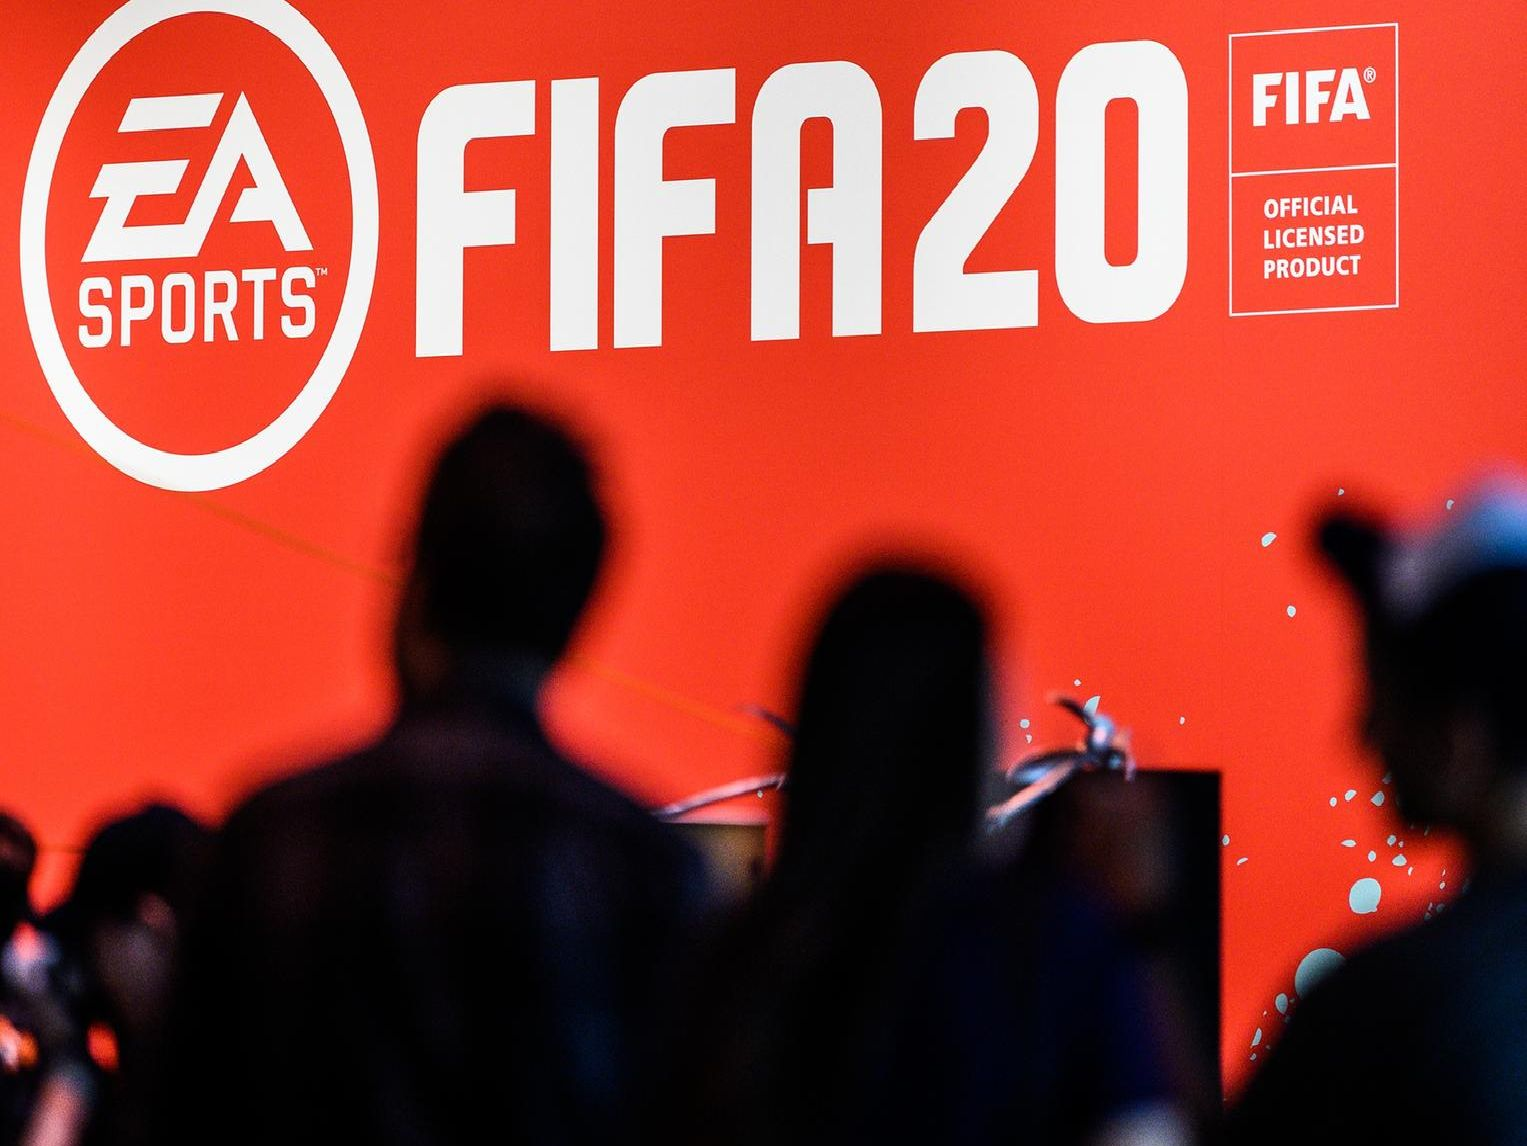 Fifa20 is released on September 27 for Playstation4, Xbox One and PC